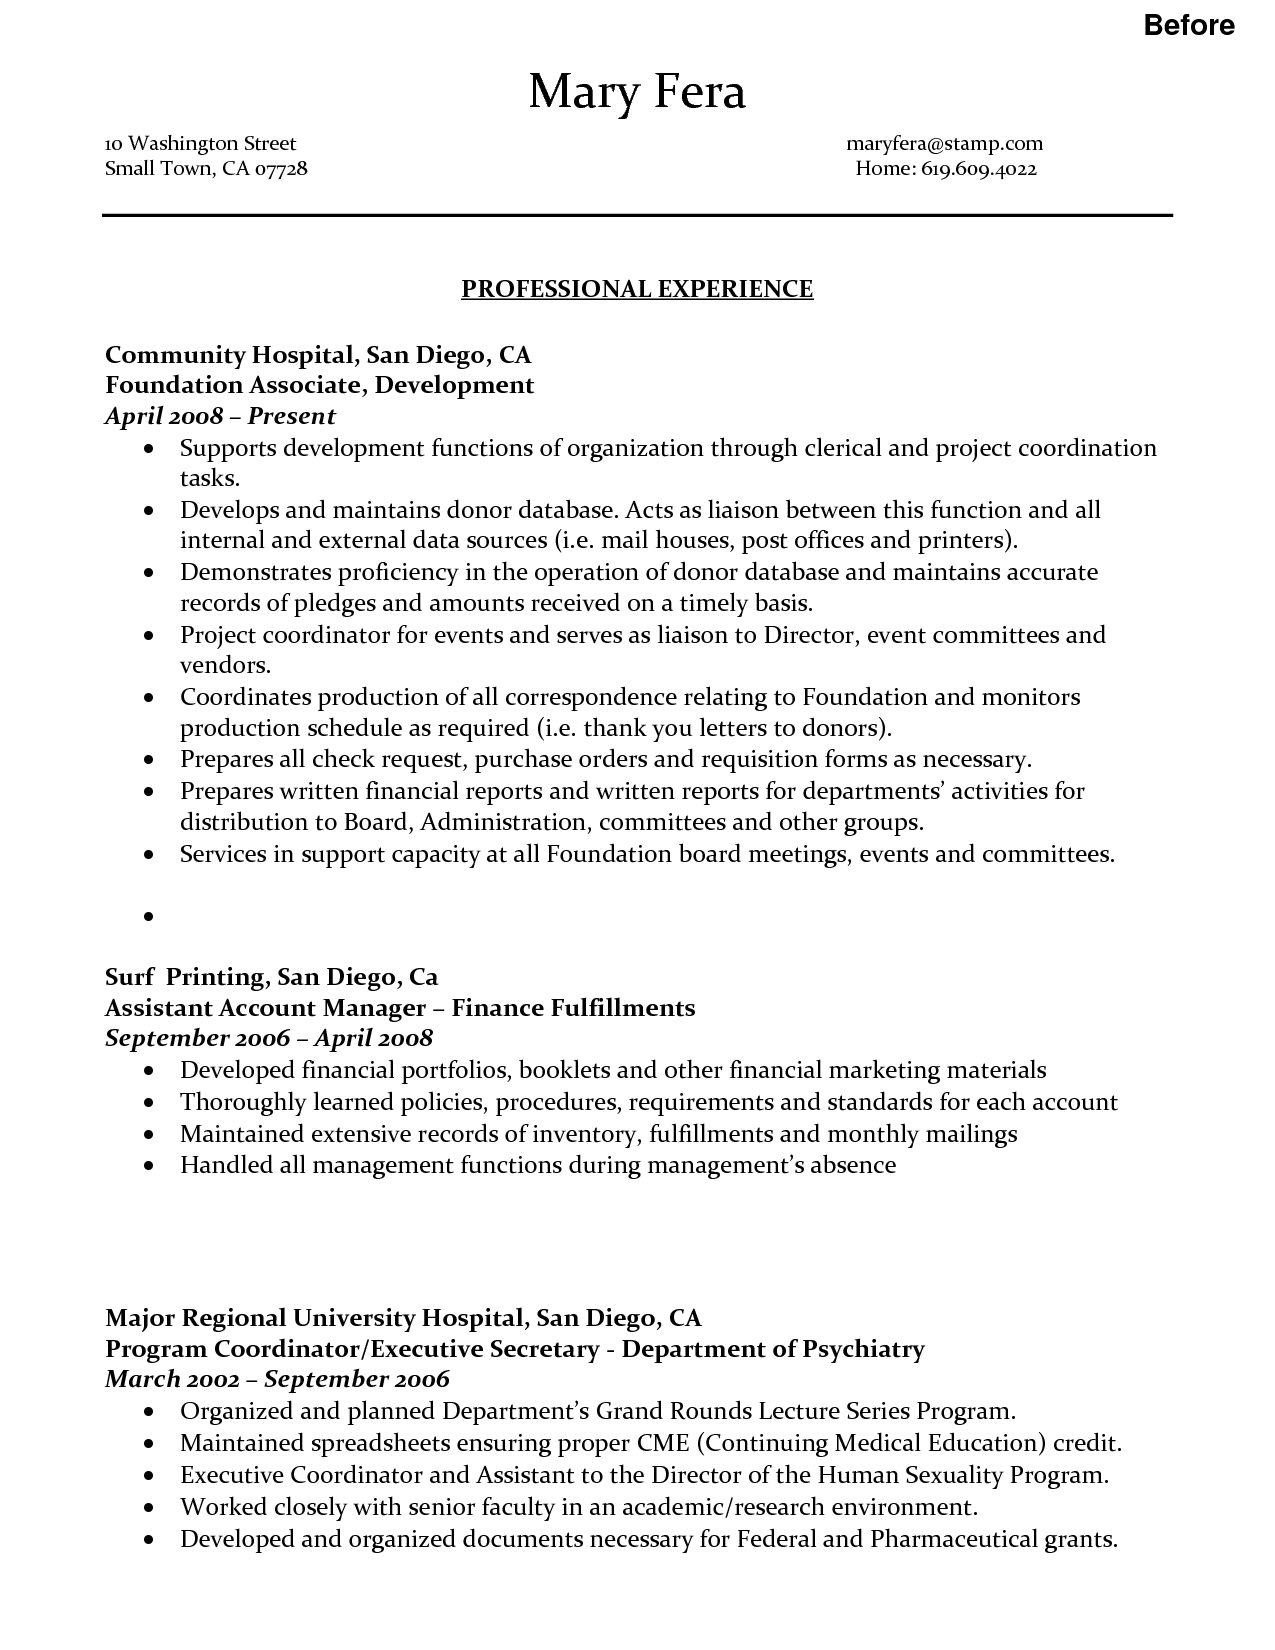 sales marketing resume objective email manager example production longbeachnursingschool online writing lab resume objective statement examples executive marketing resume objectives